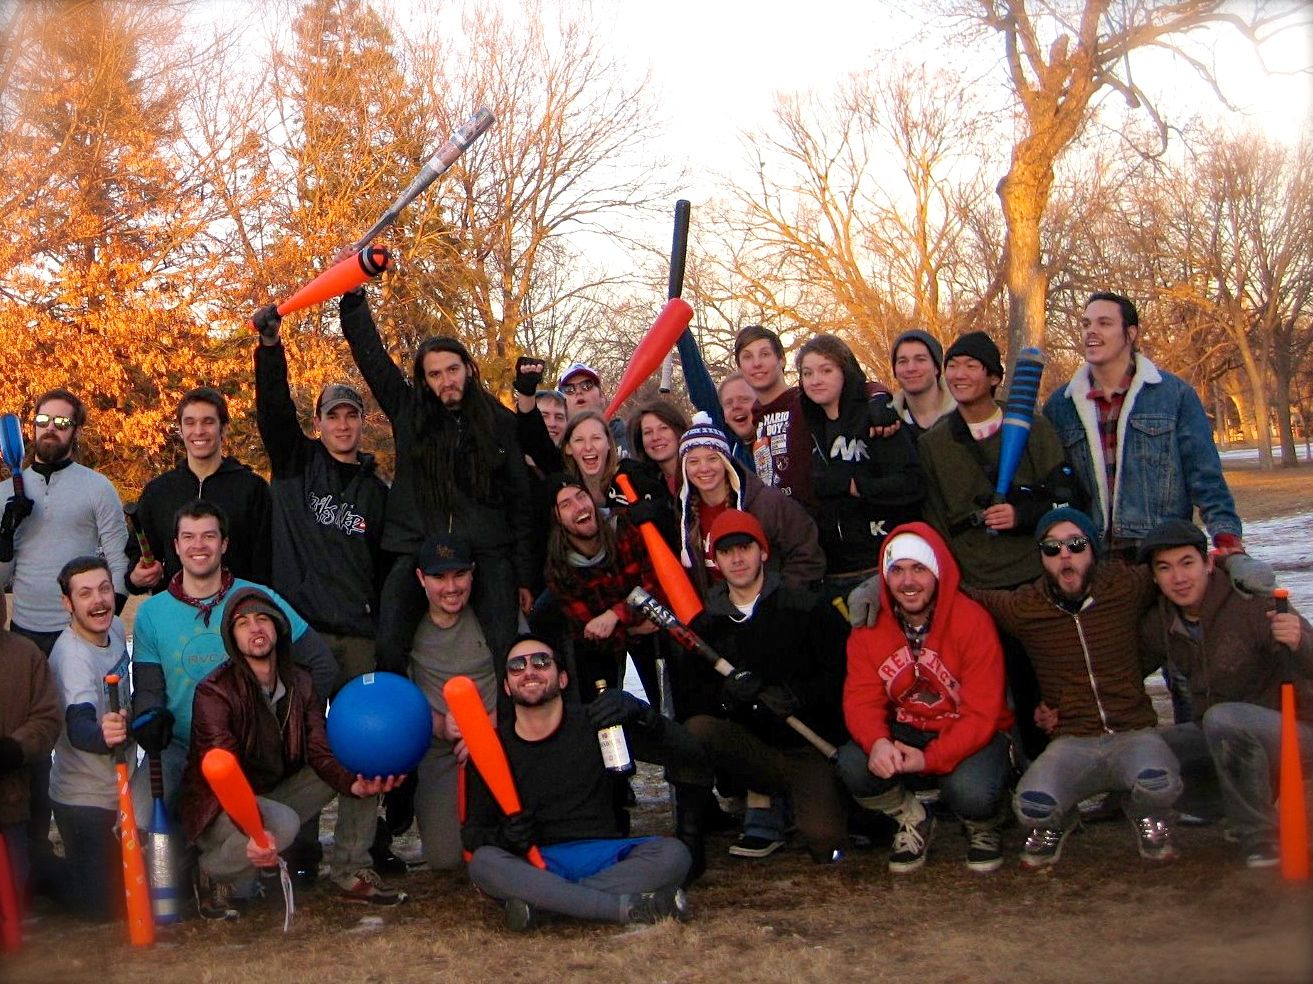 The Minneapolis Chapter of Johnball at Matthews Park. Bunch of rockstar hooligans, a lot from QBP.